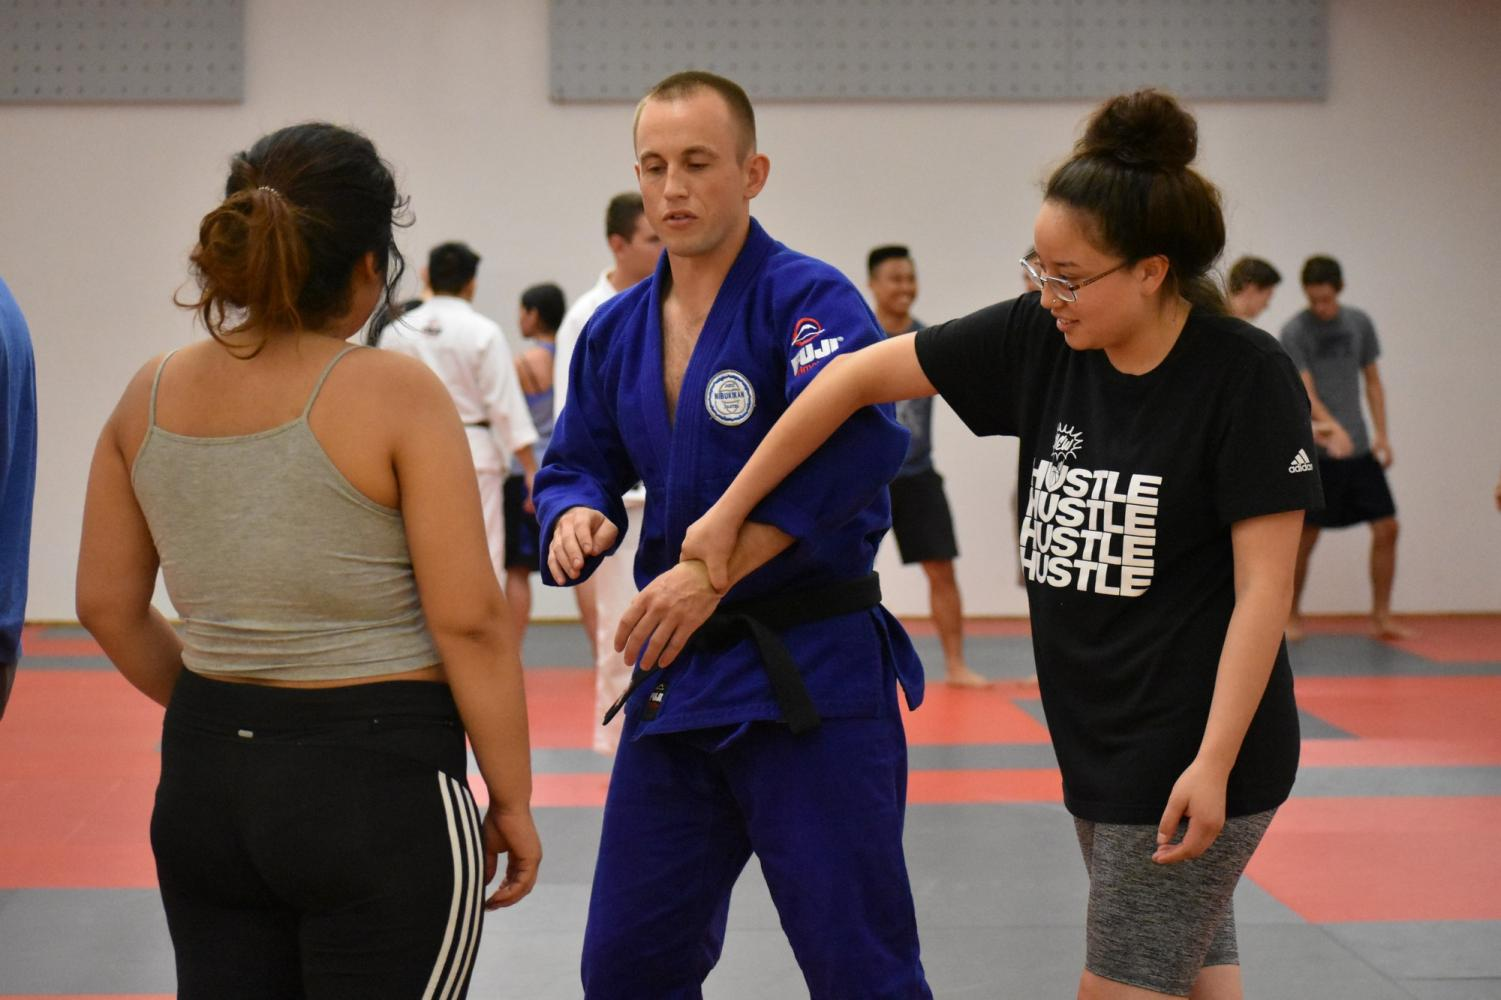 Instructor Austin Stahl teaches a breakaway technique to two students. Photo credit: Lucero Del Rayo-Nava